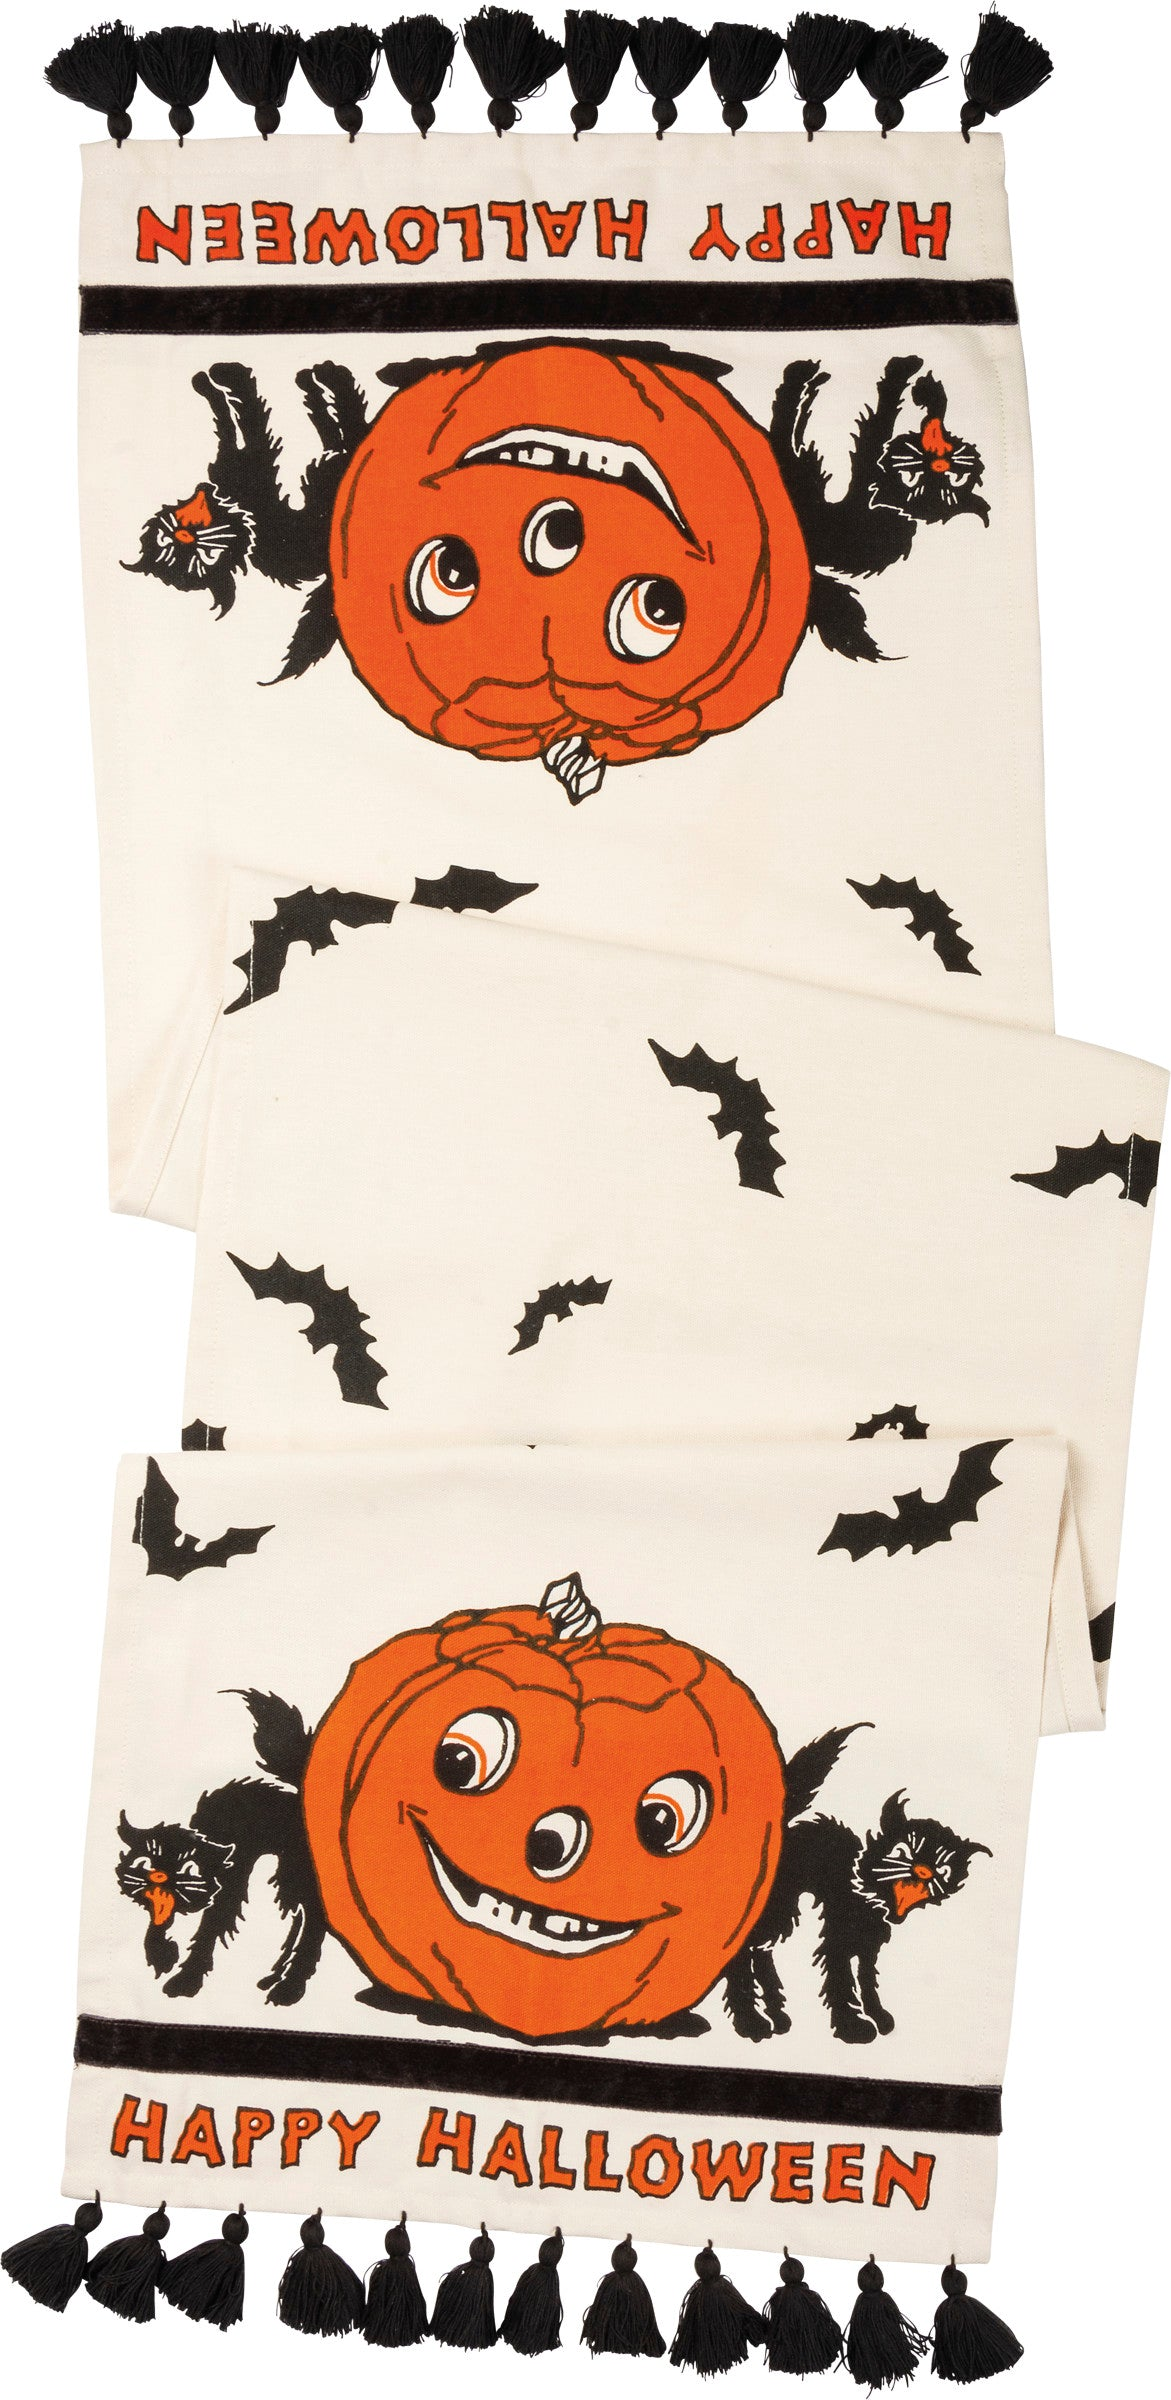 Retro Halloween Table Runner with Black Cats & Pumpkins